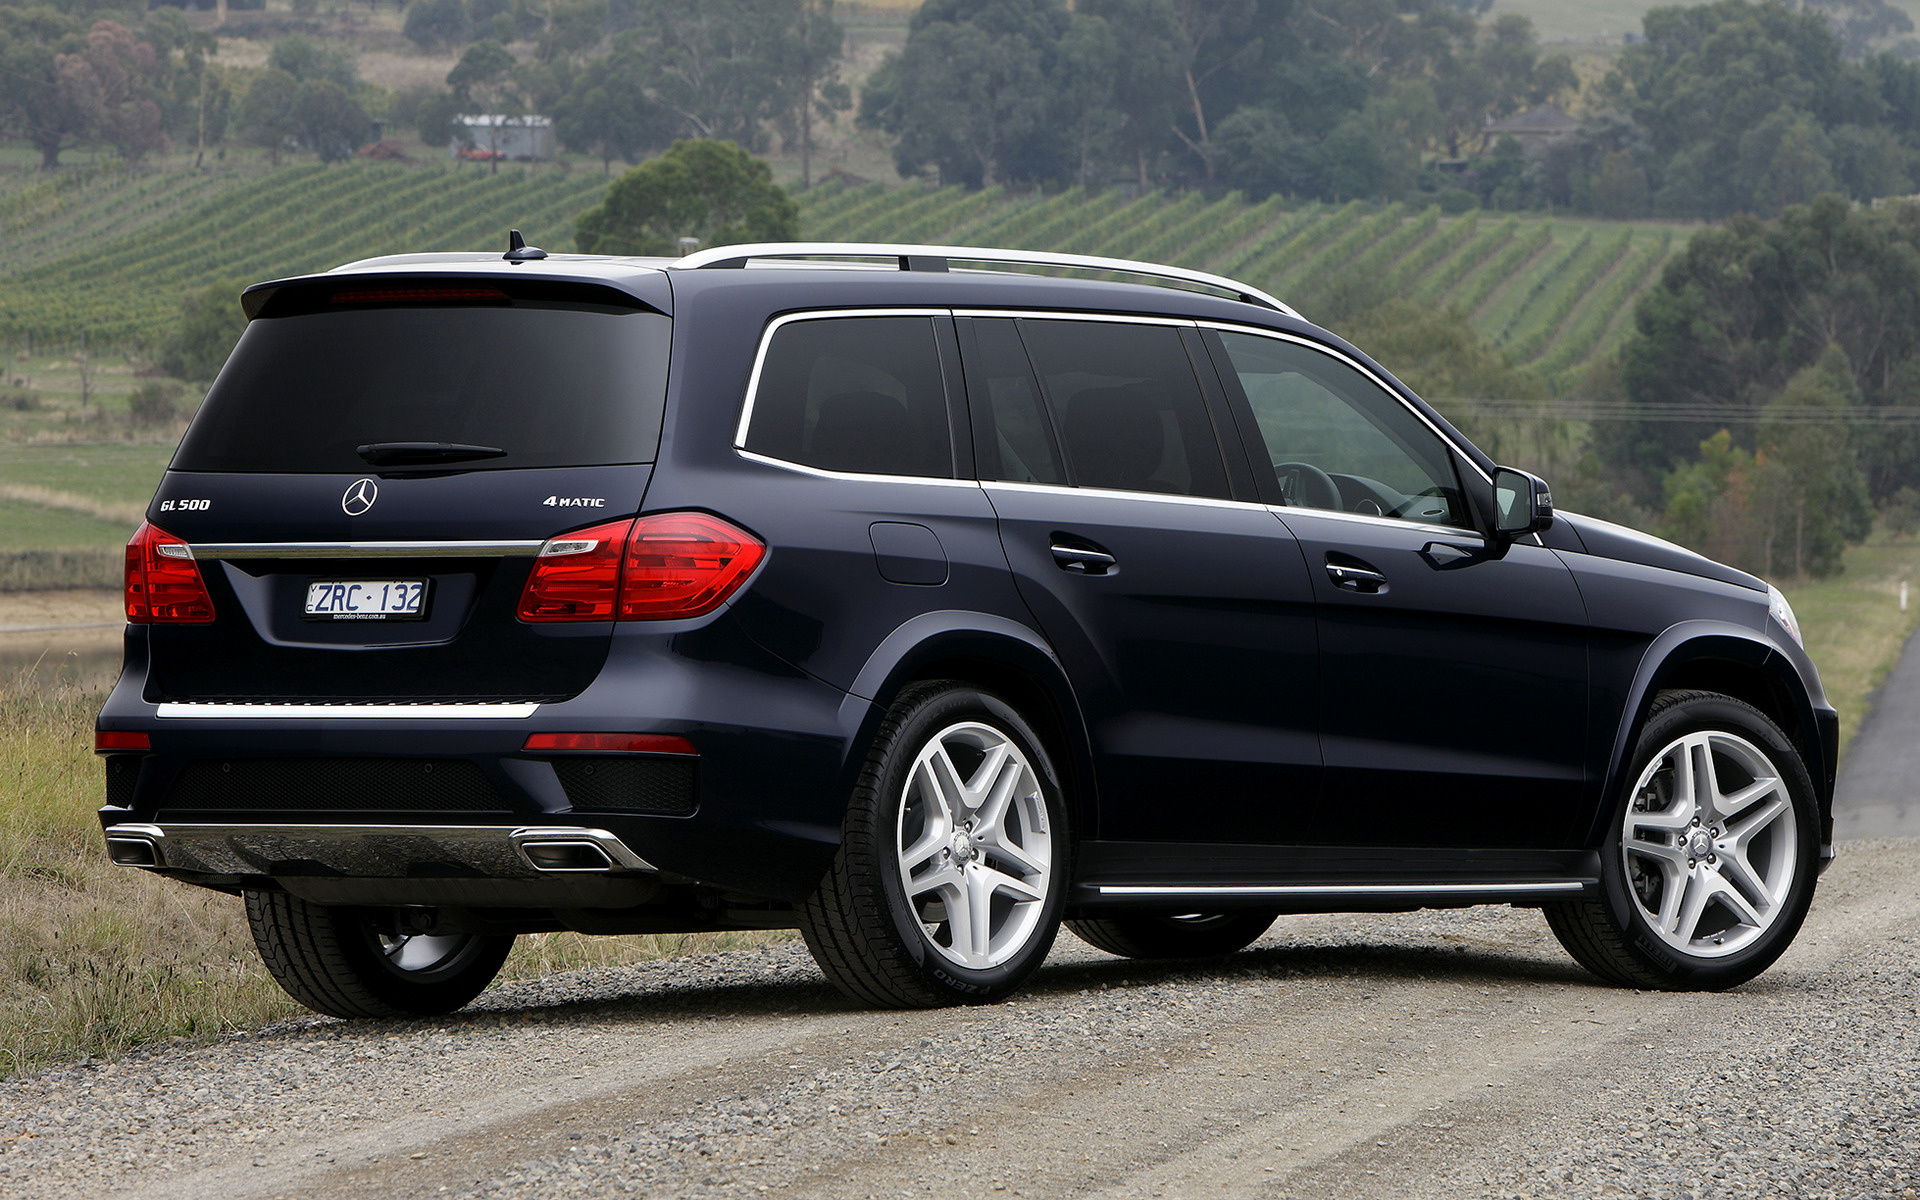 mercedes benz gl class amg styling 2013 au wallpapers and hd images car pixel. Black Bedroom Furniture Sets. Home Design Ideas